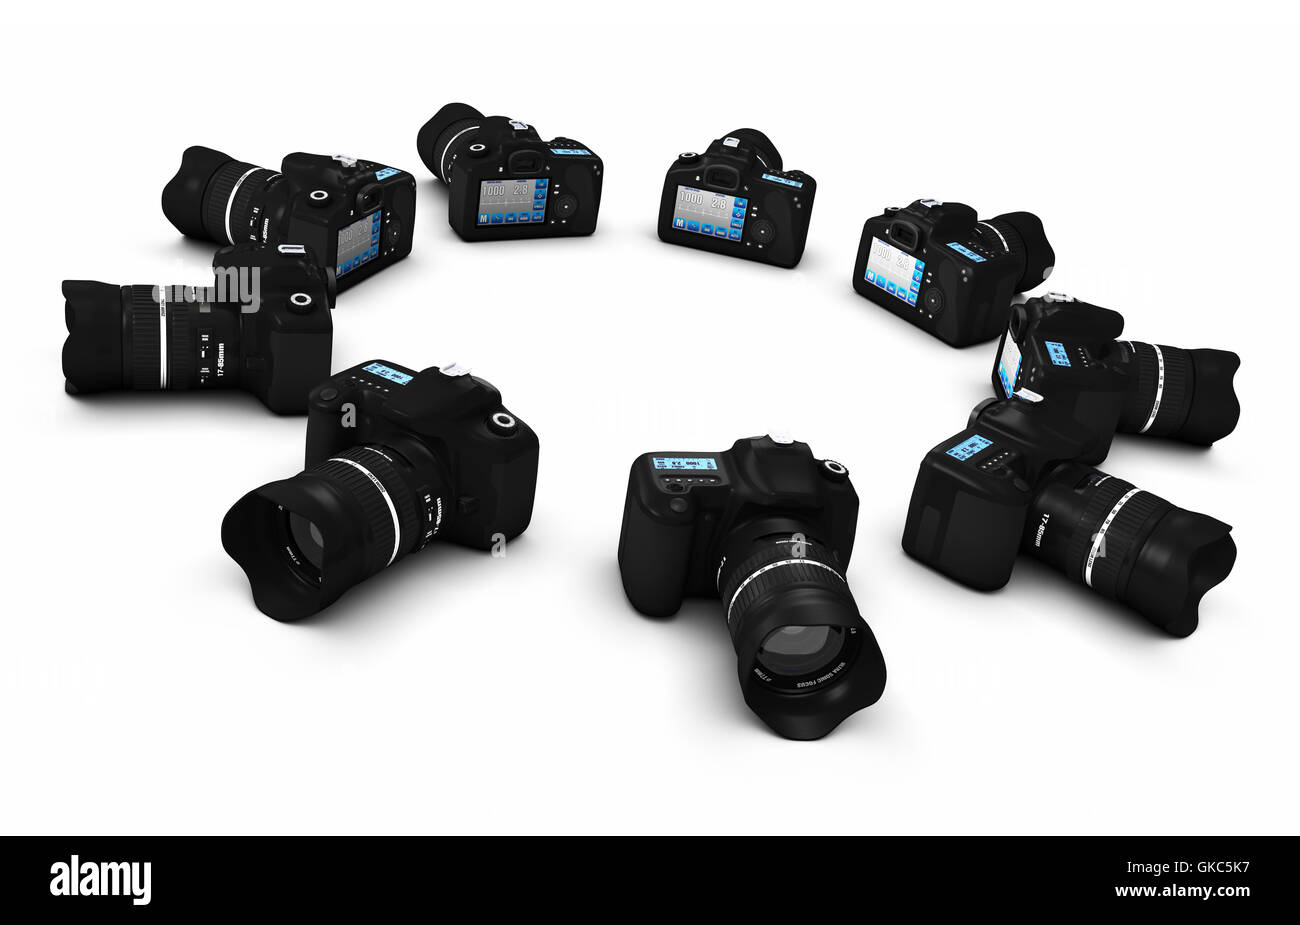 dslr concept - digital slr cameras in district 5 - Stock Image